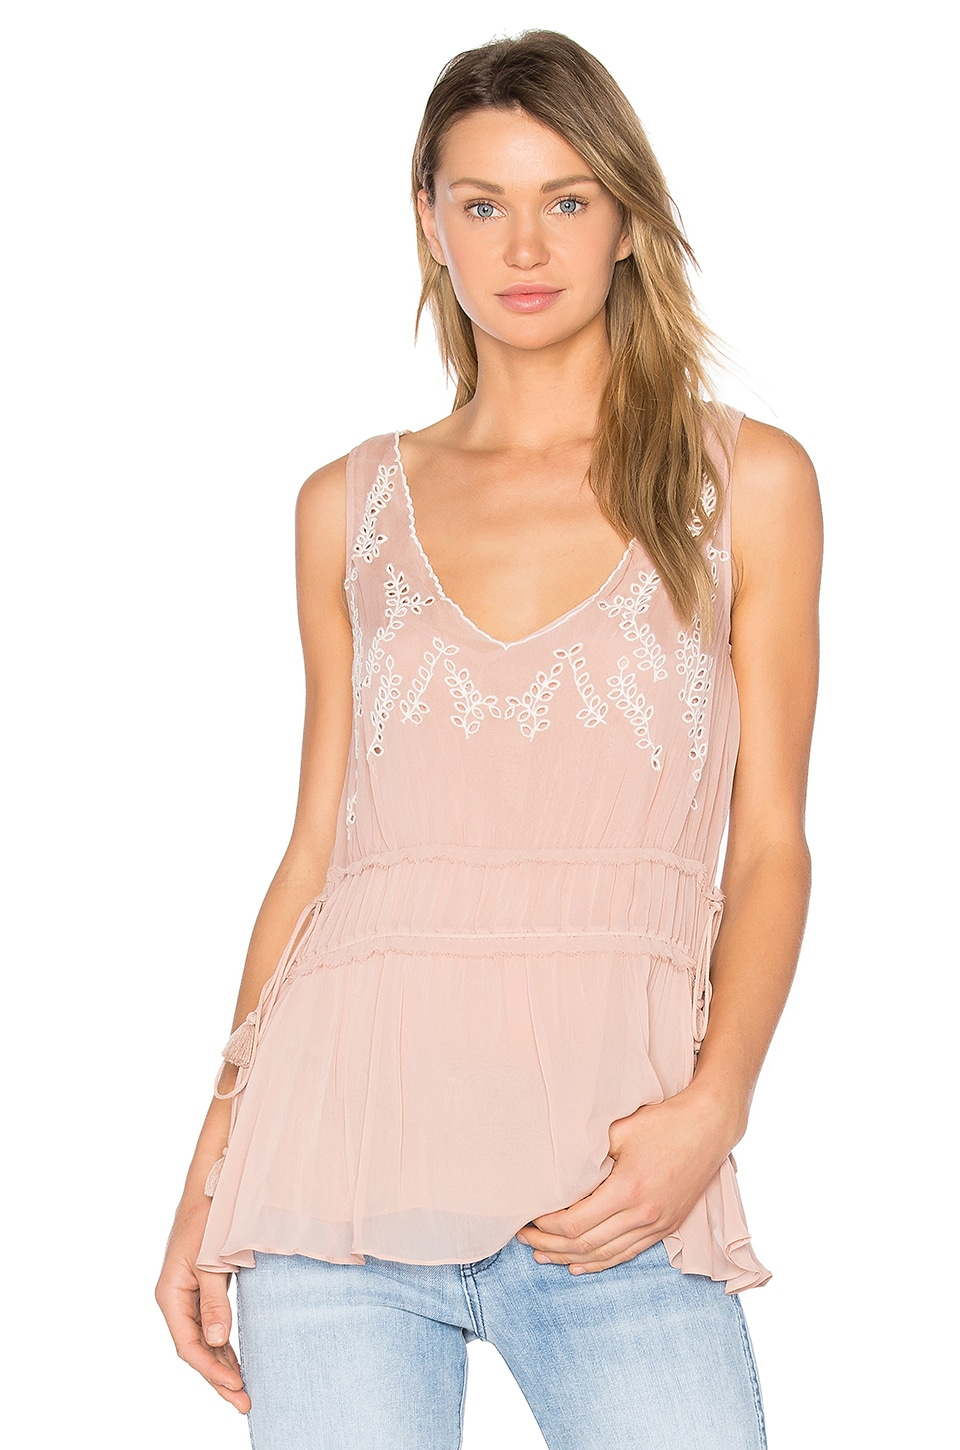 Ella Moss Trellis Vine Top in Faded Blush